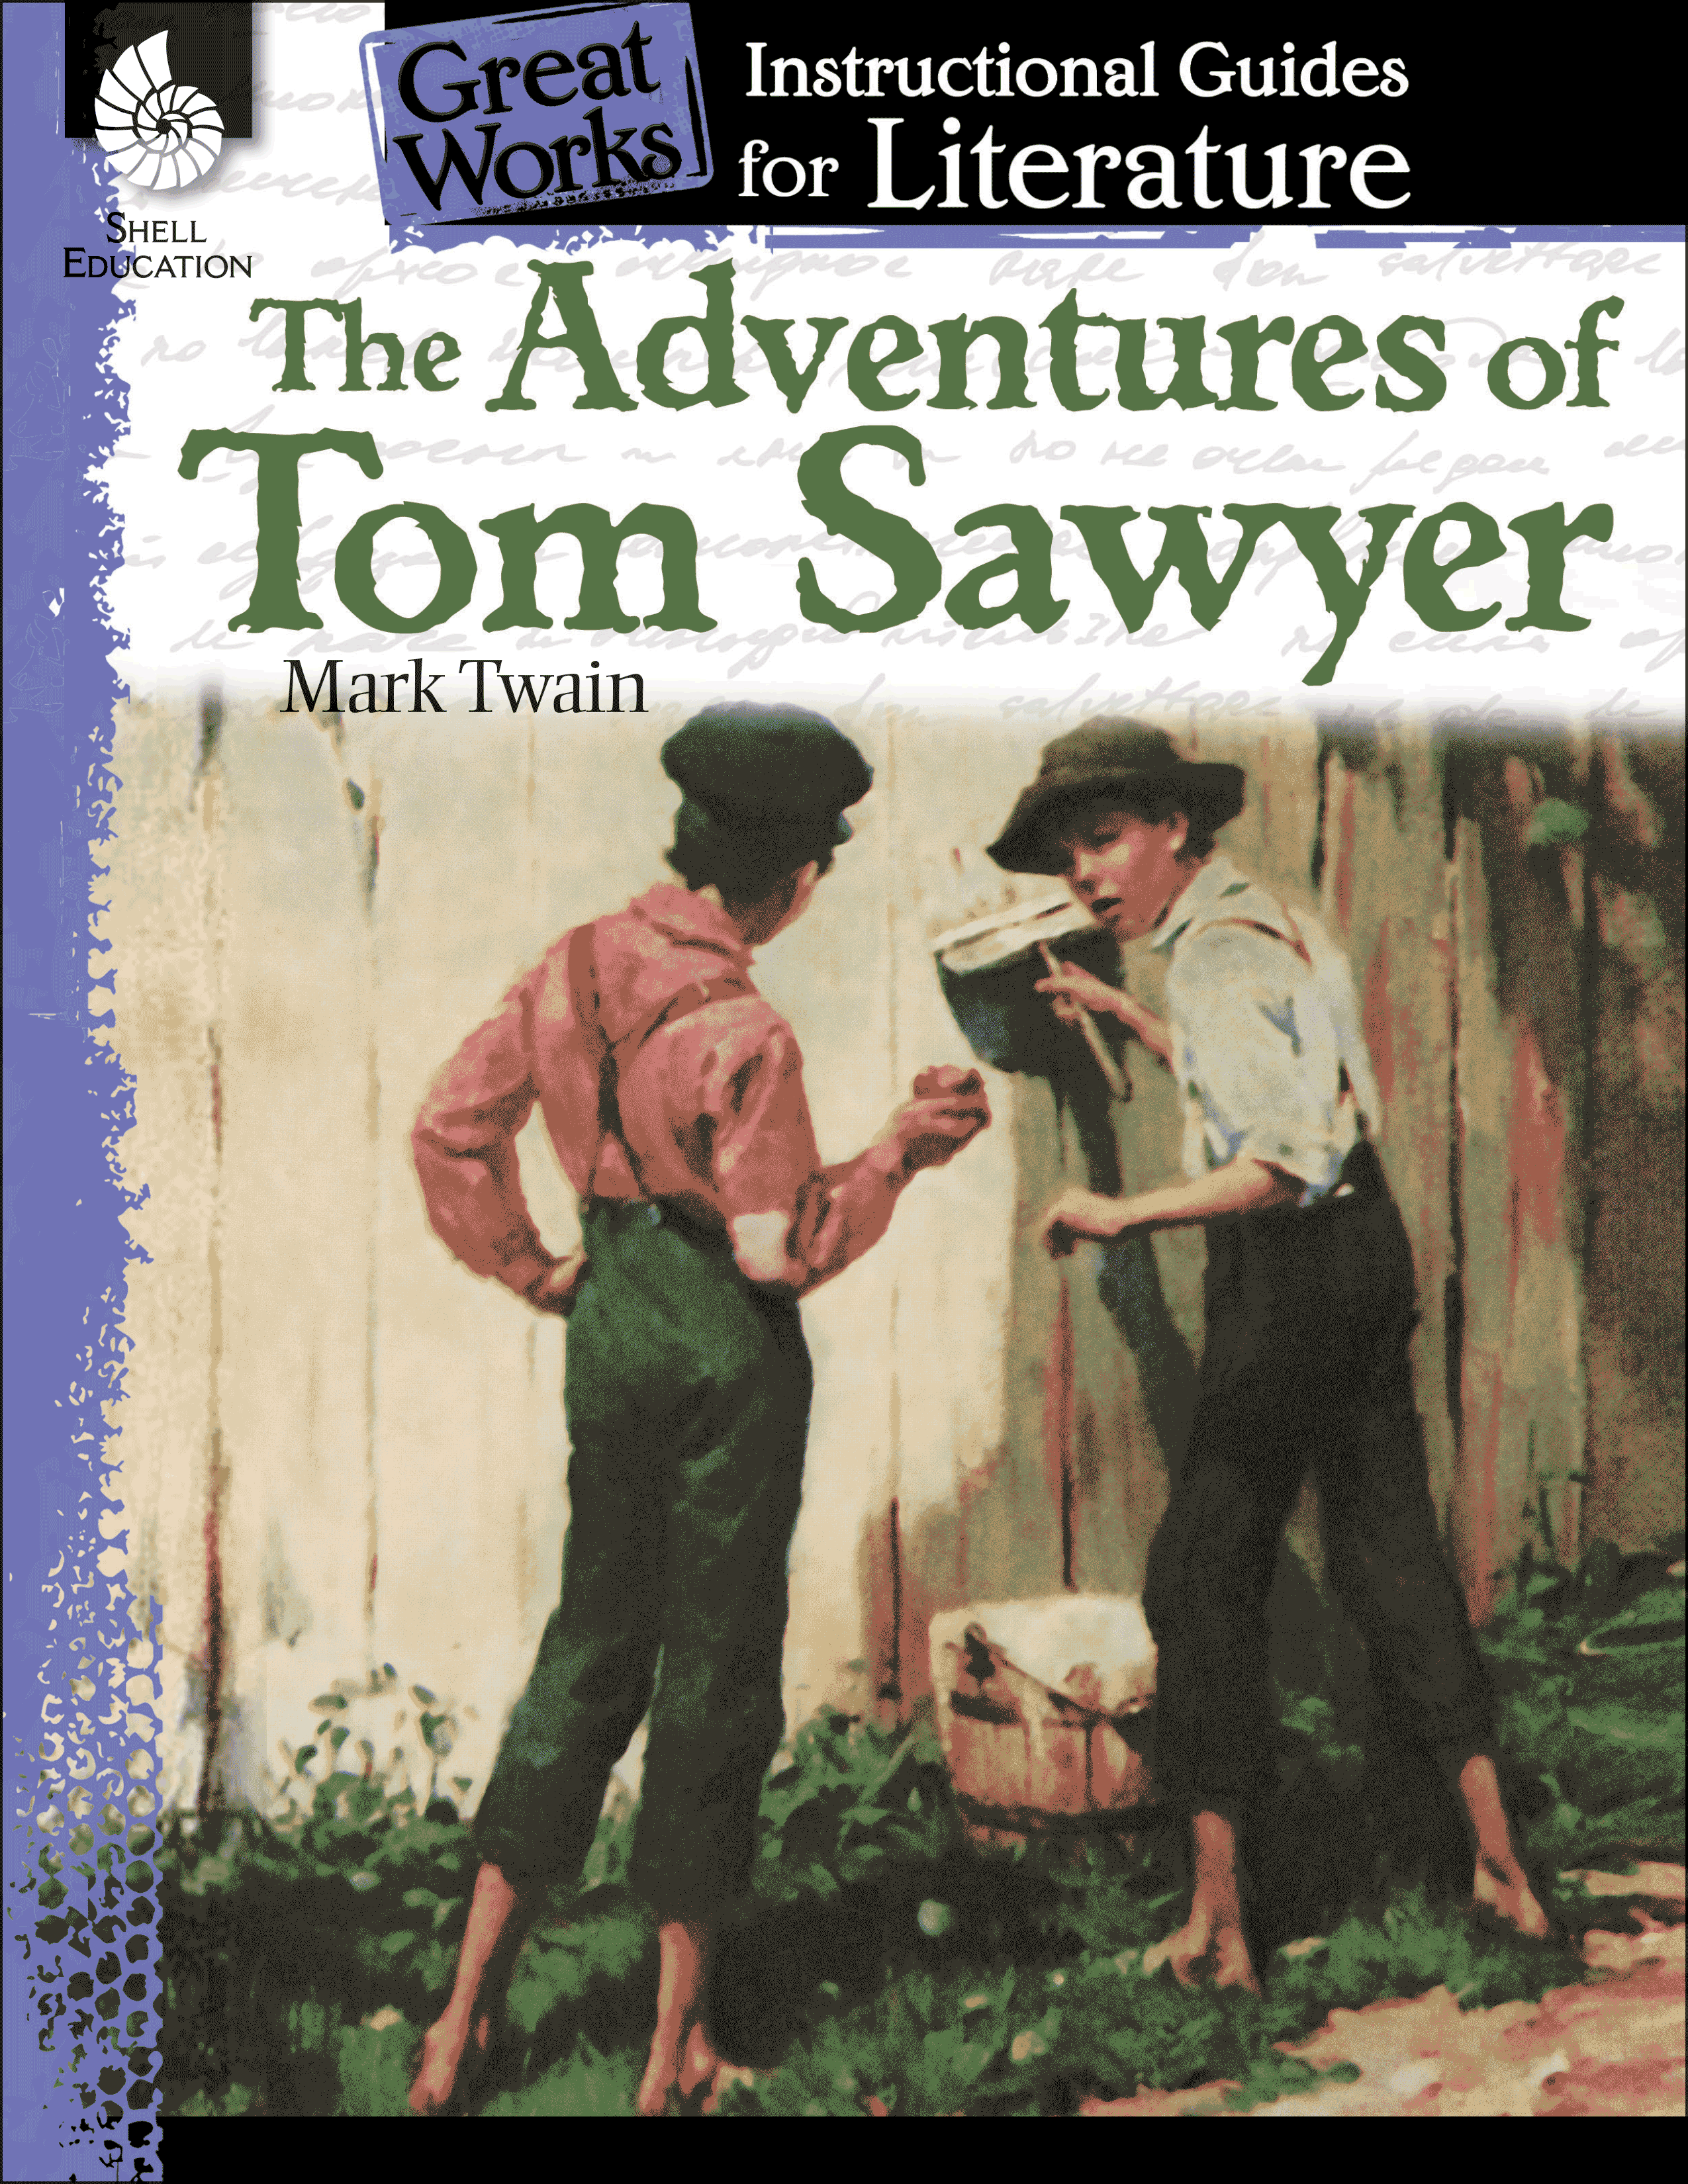 tom sawyer theme essay Starting an essay on mark twain's the adventures of tom sawyer organize your thoughts and more at our handy-dandy shmoop writing lab.